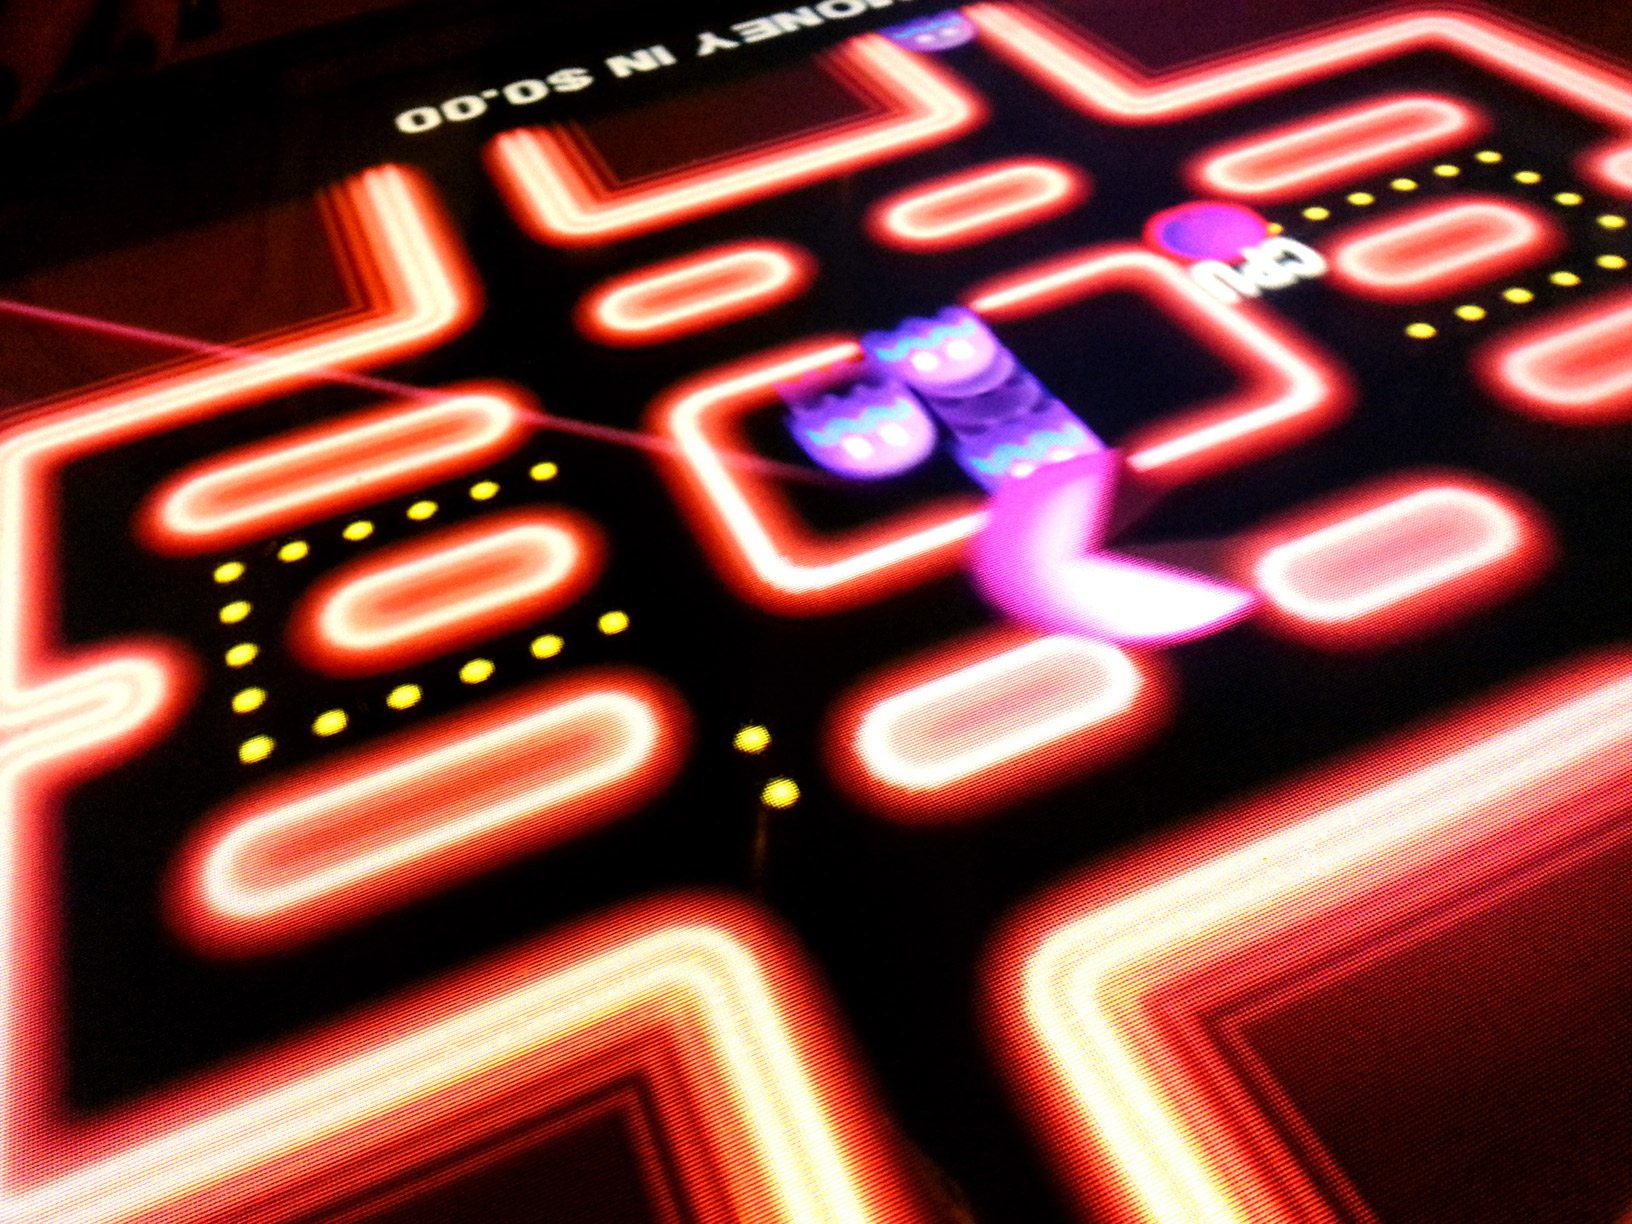 user science journal blog header image of vintage pacman game